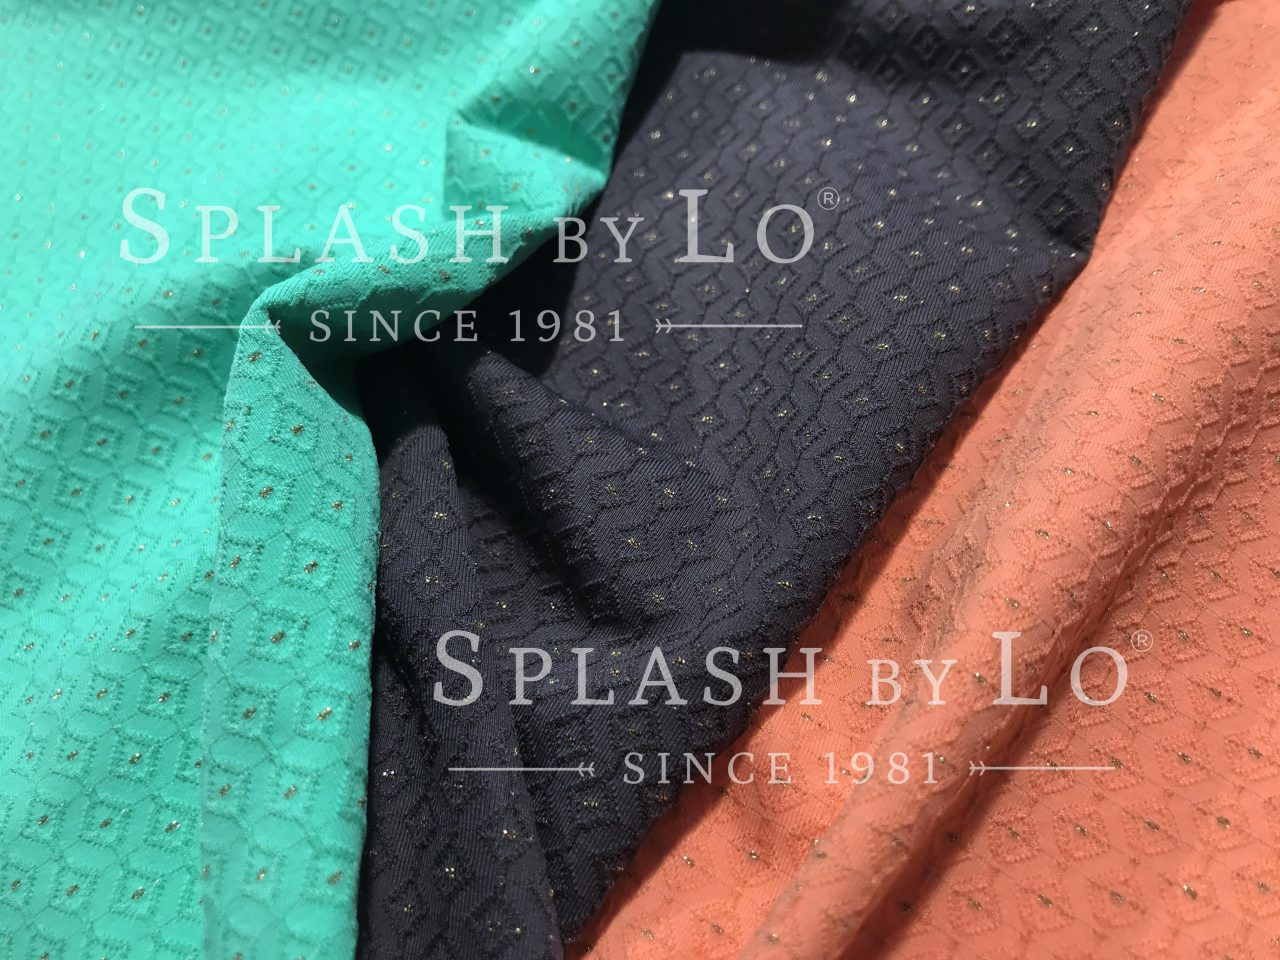 Splash by Lo